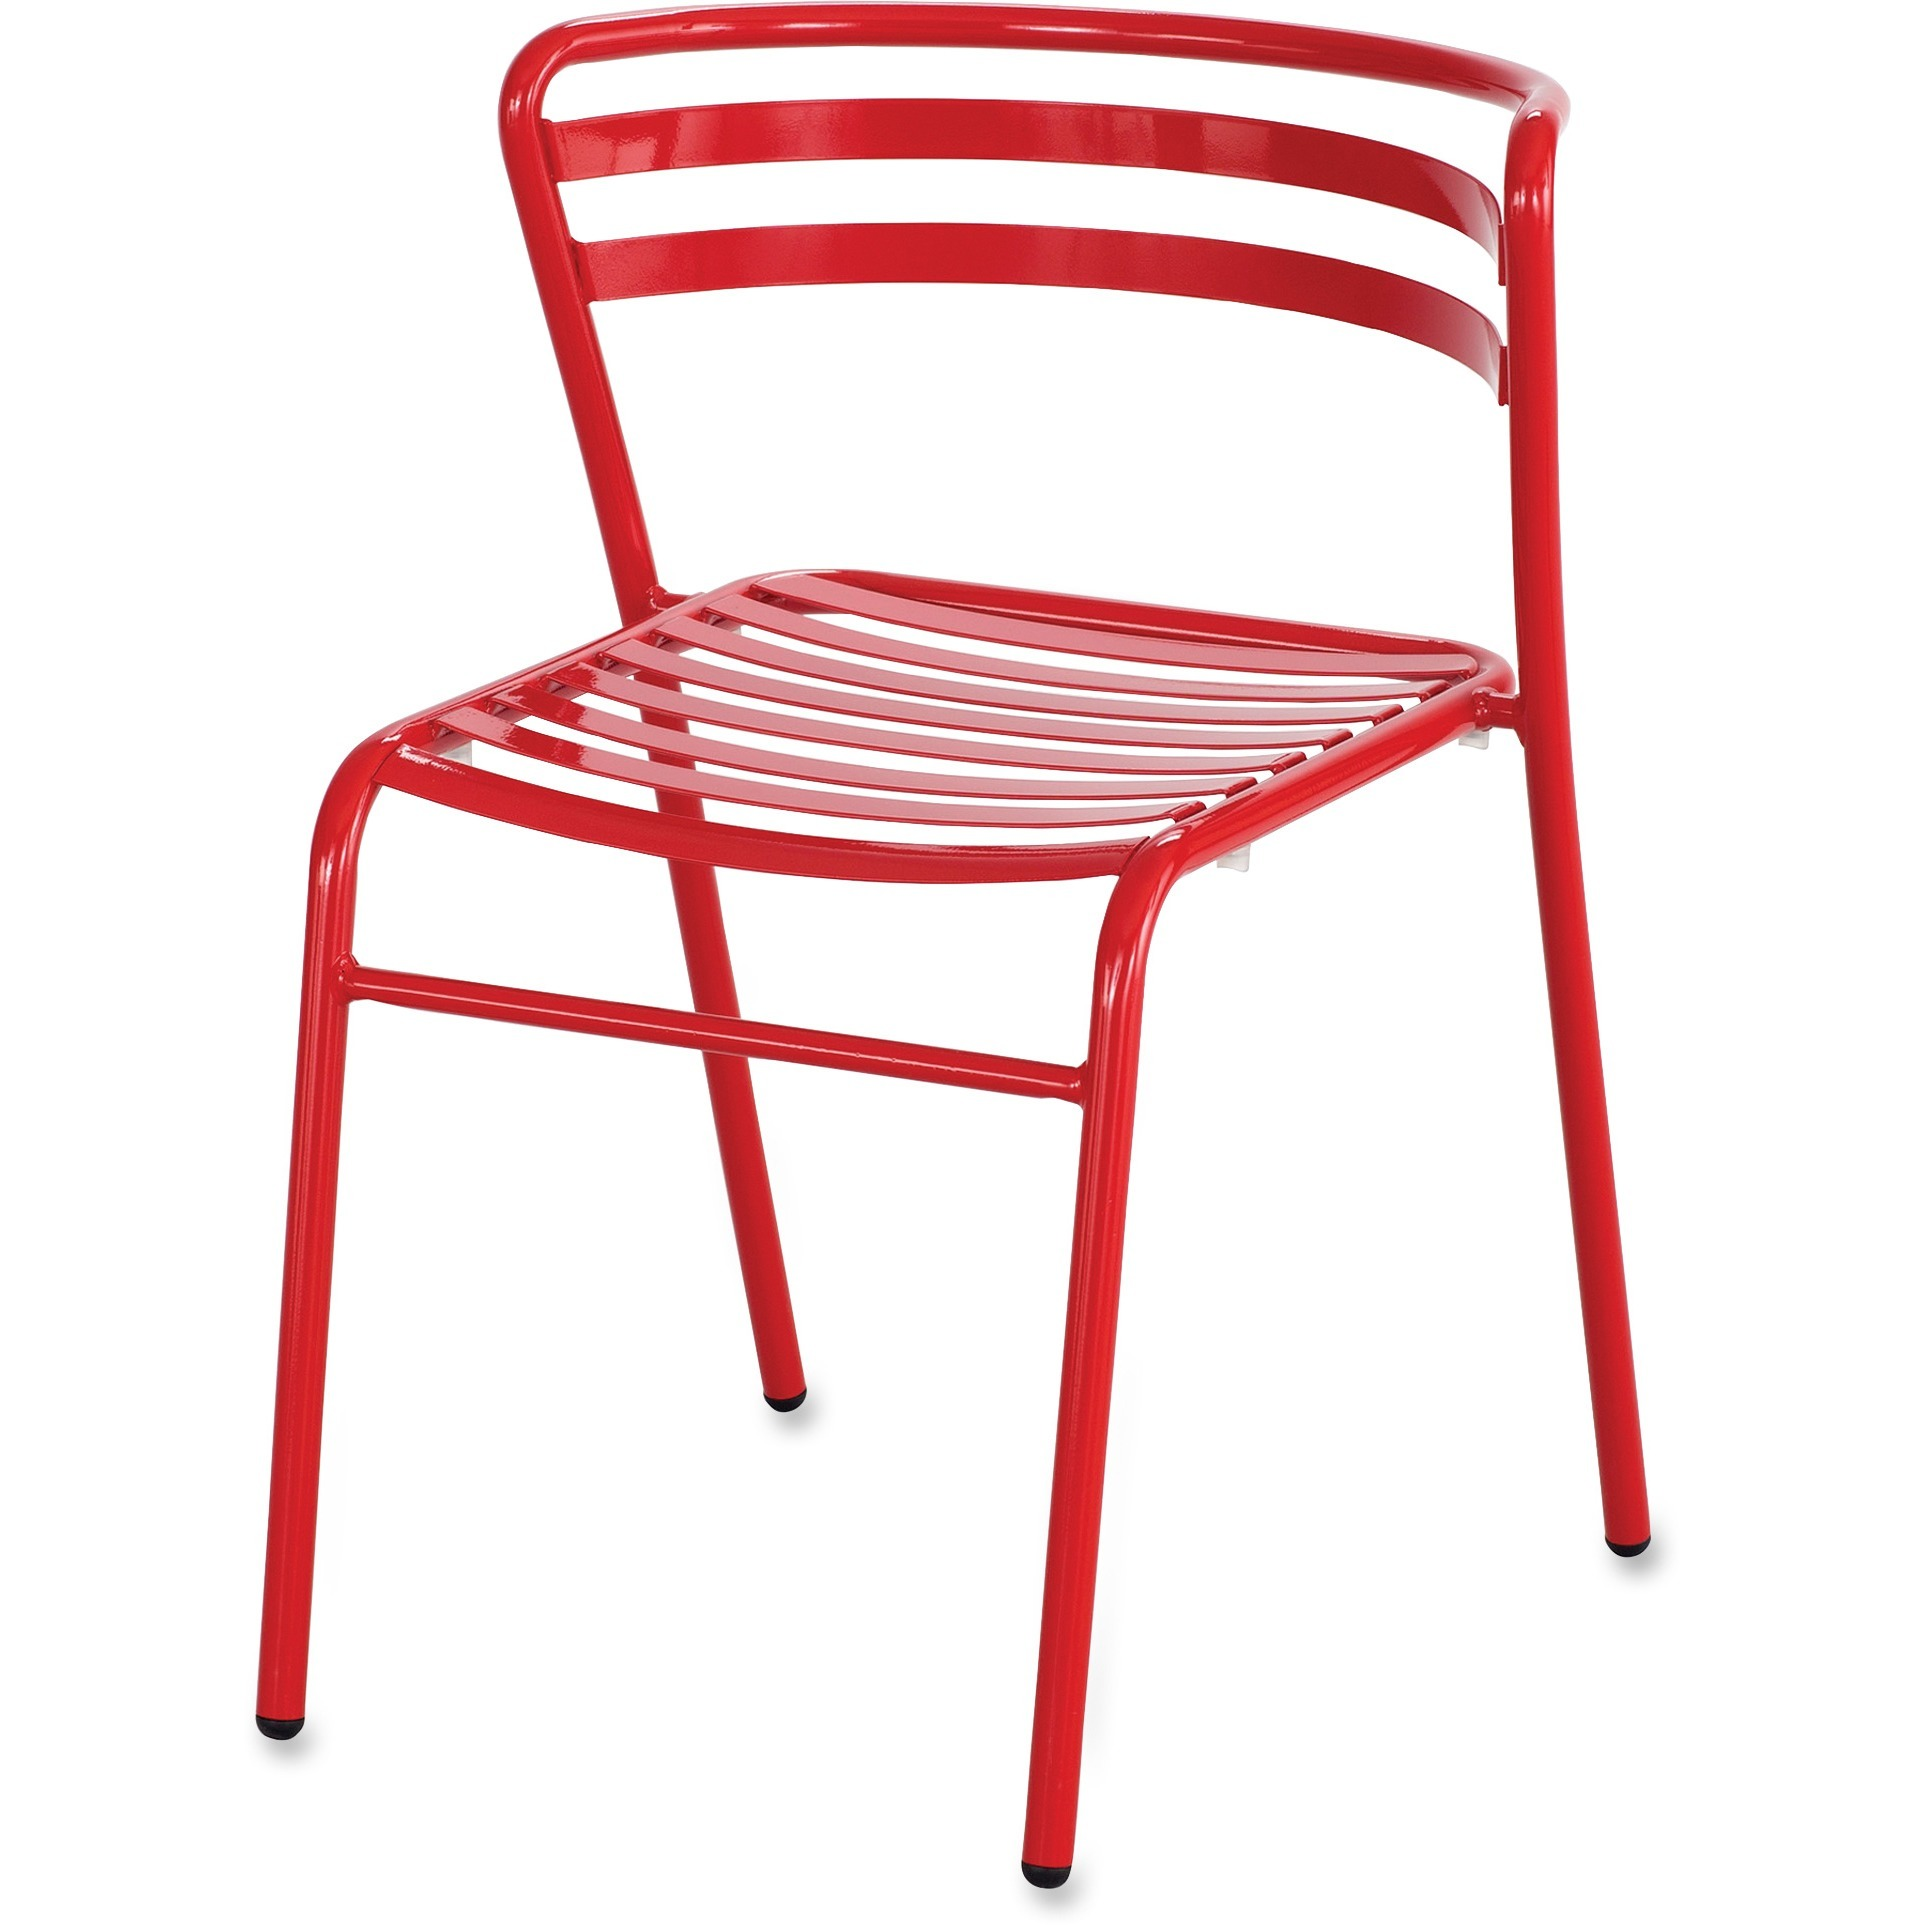 Safco, SAF4360RD, Multipurpose Stacking Metal Chairs, 2 / Carton